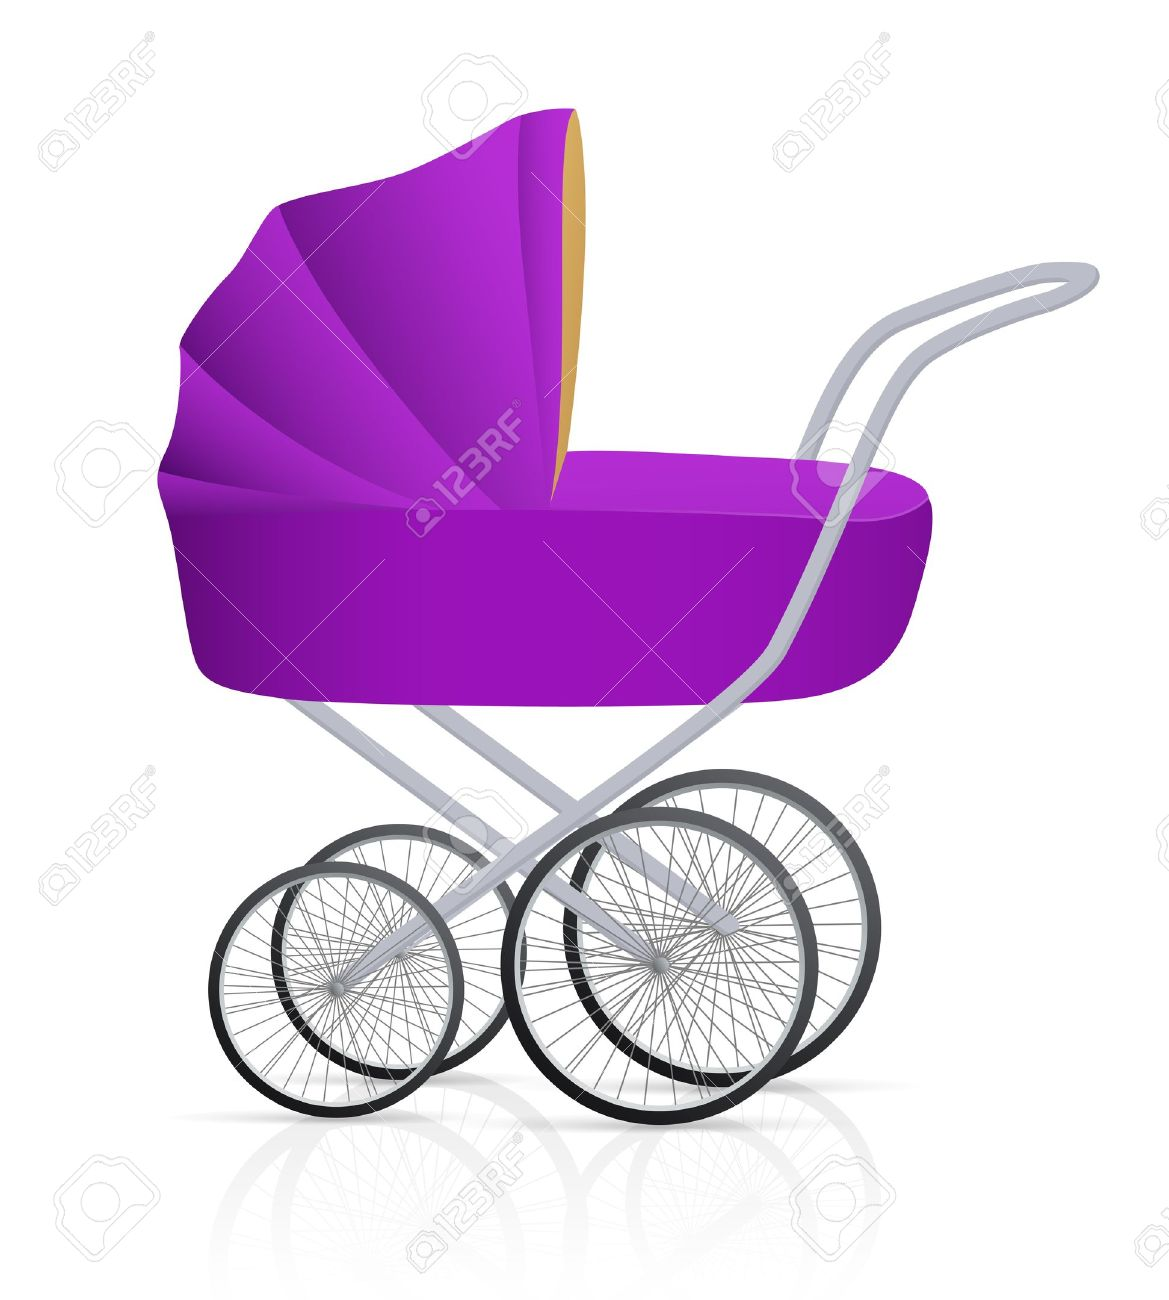 Baby carriage silhouette clip art at getdrawings free for 1169x1300 purple baby carriage clipart voltagebd Choice Image